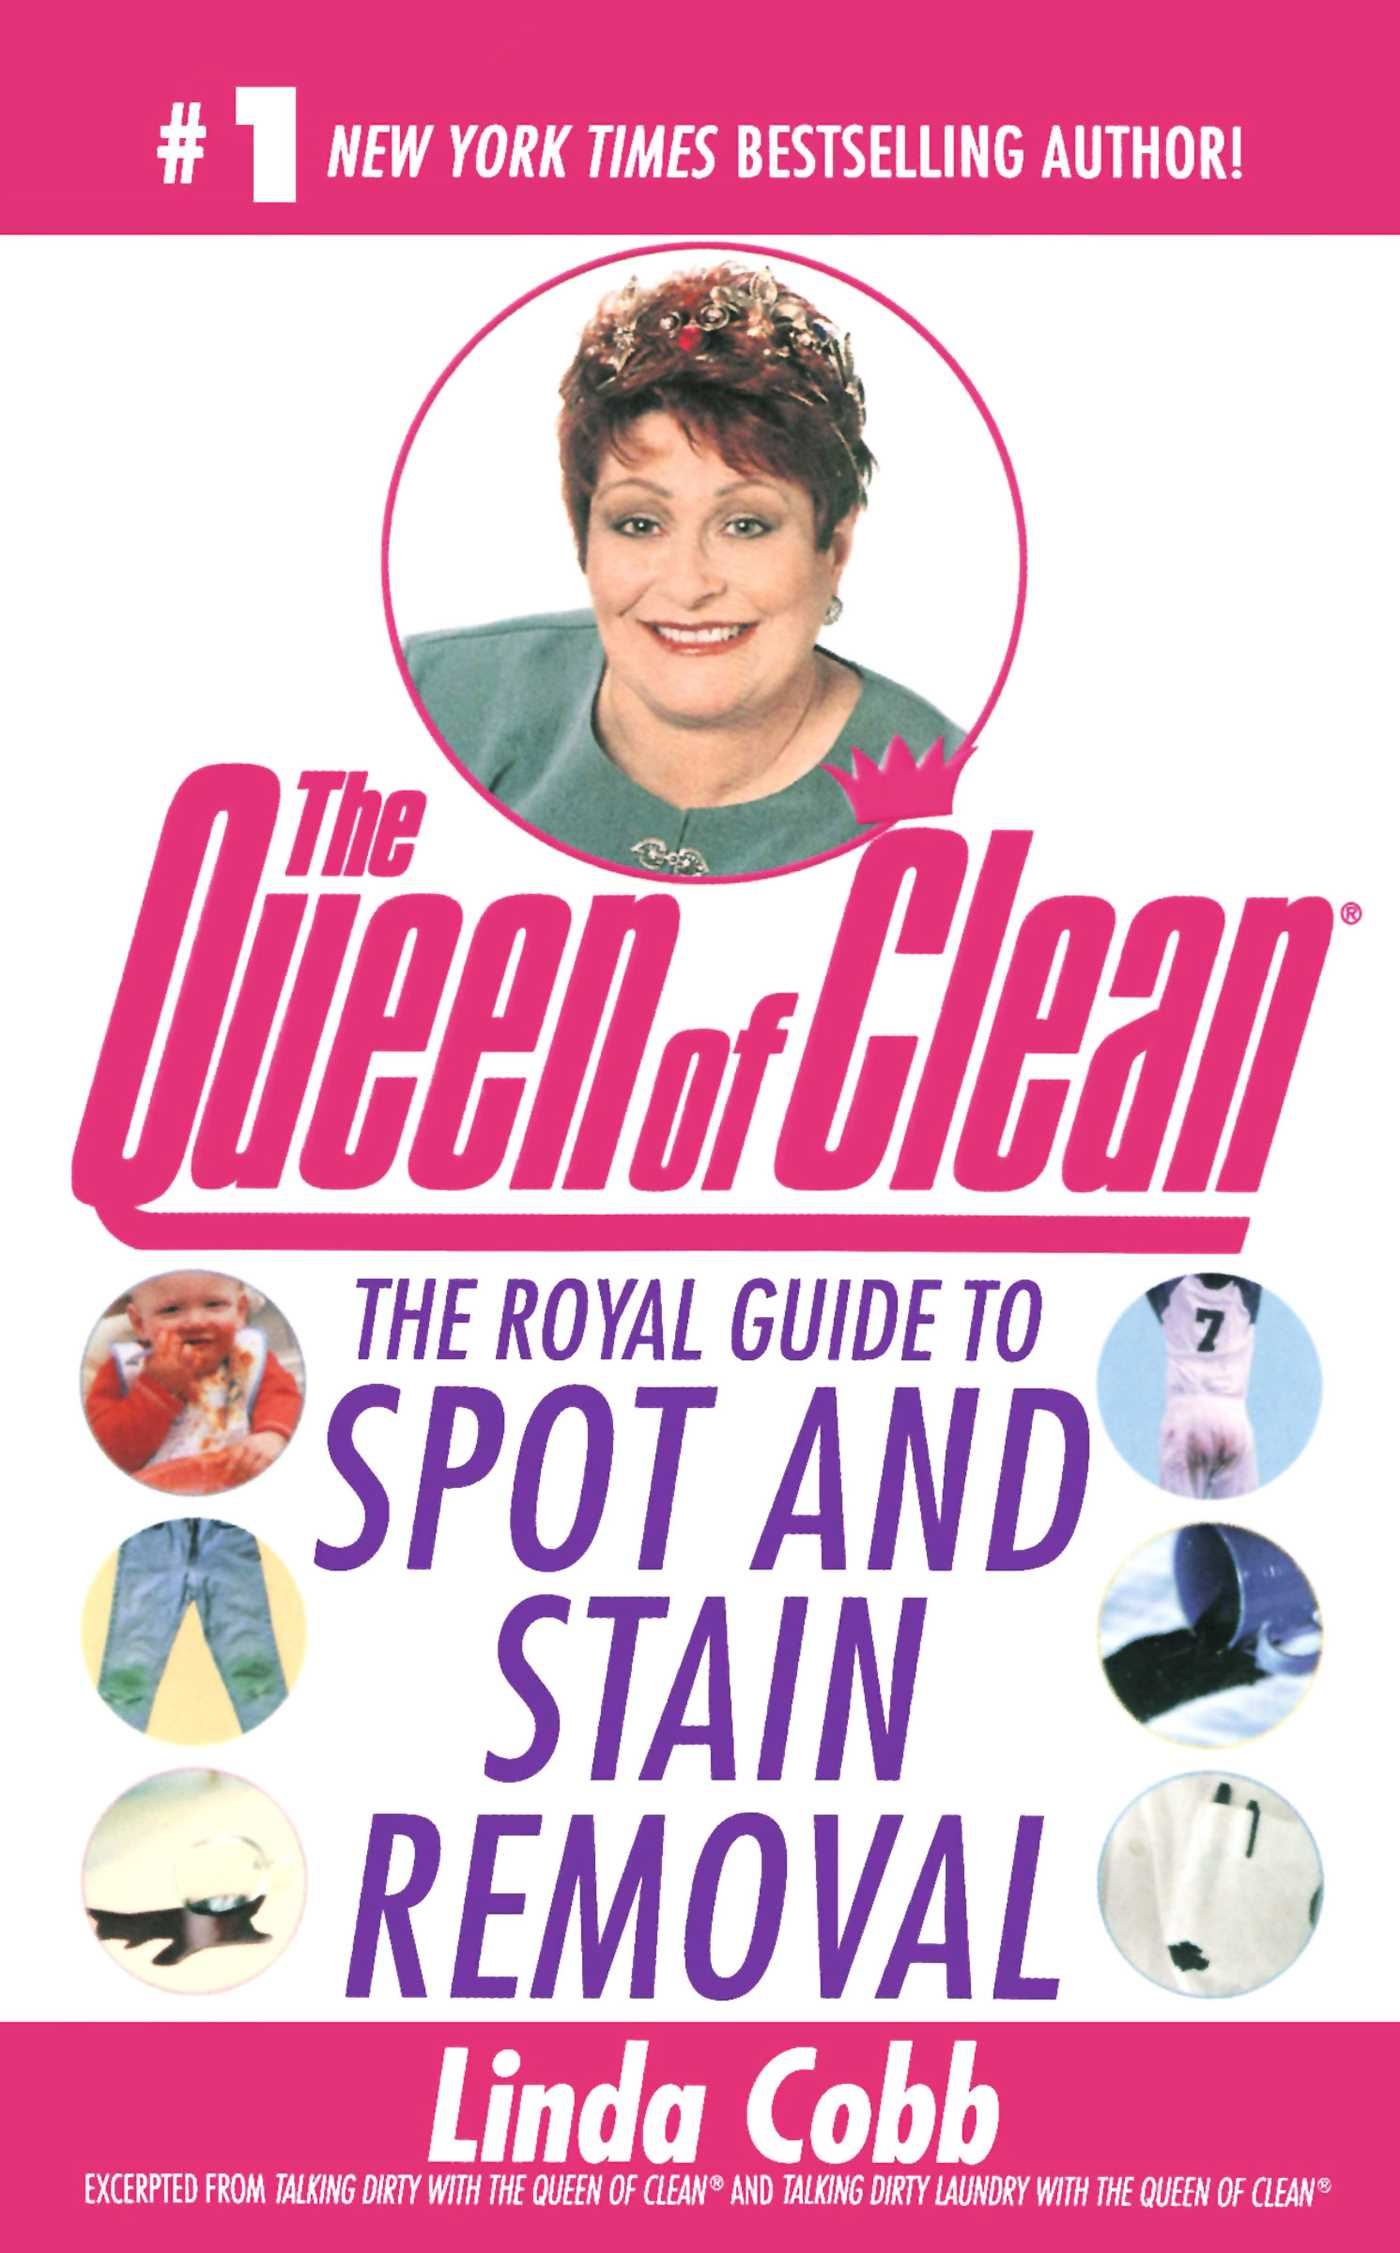 The-royal-guide-to-spot-and-stain-removal-9781451604153_hr